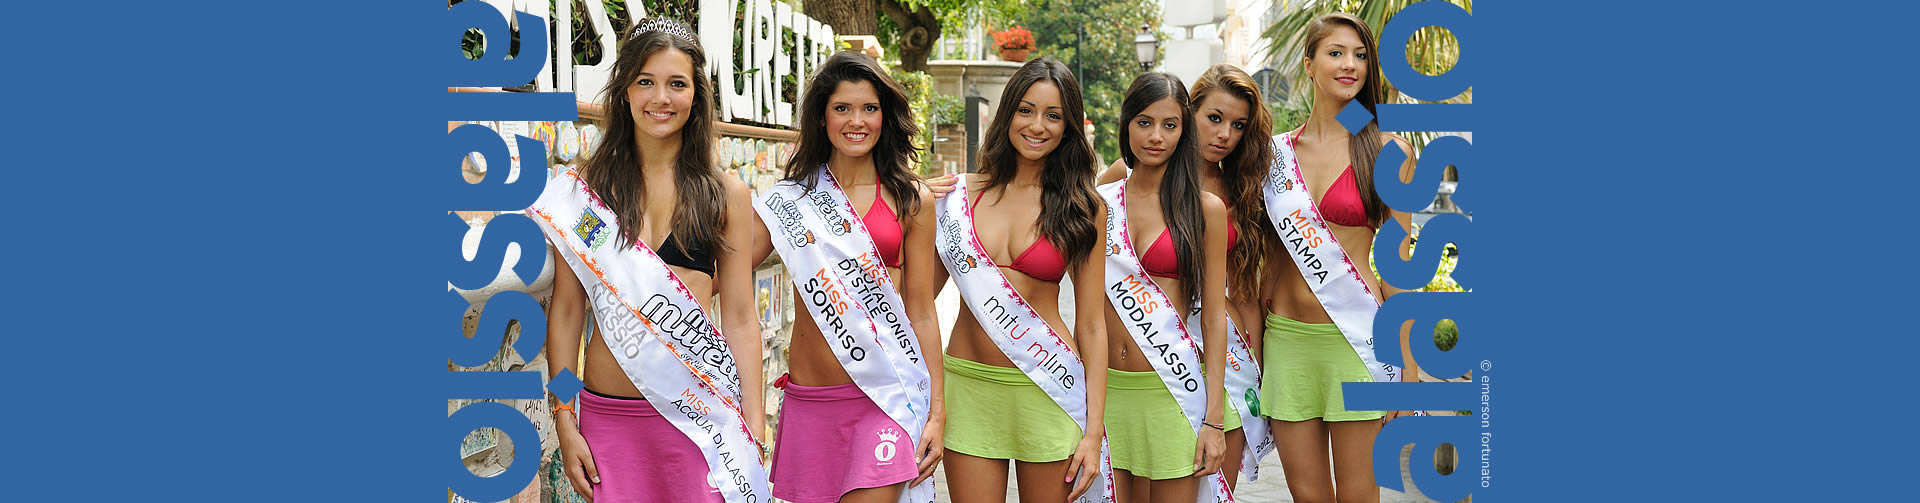 Miss Muretto Beauty Contest